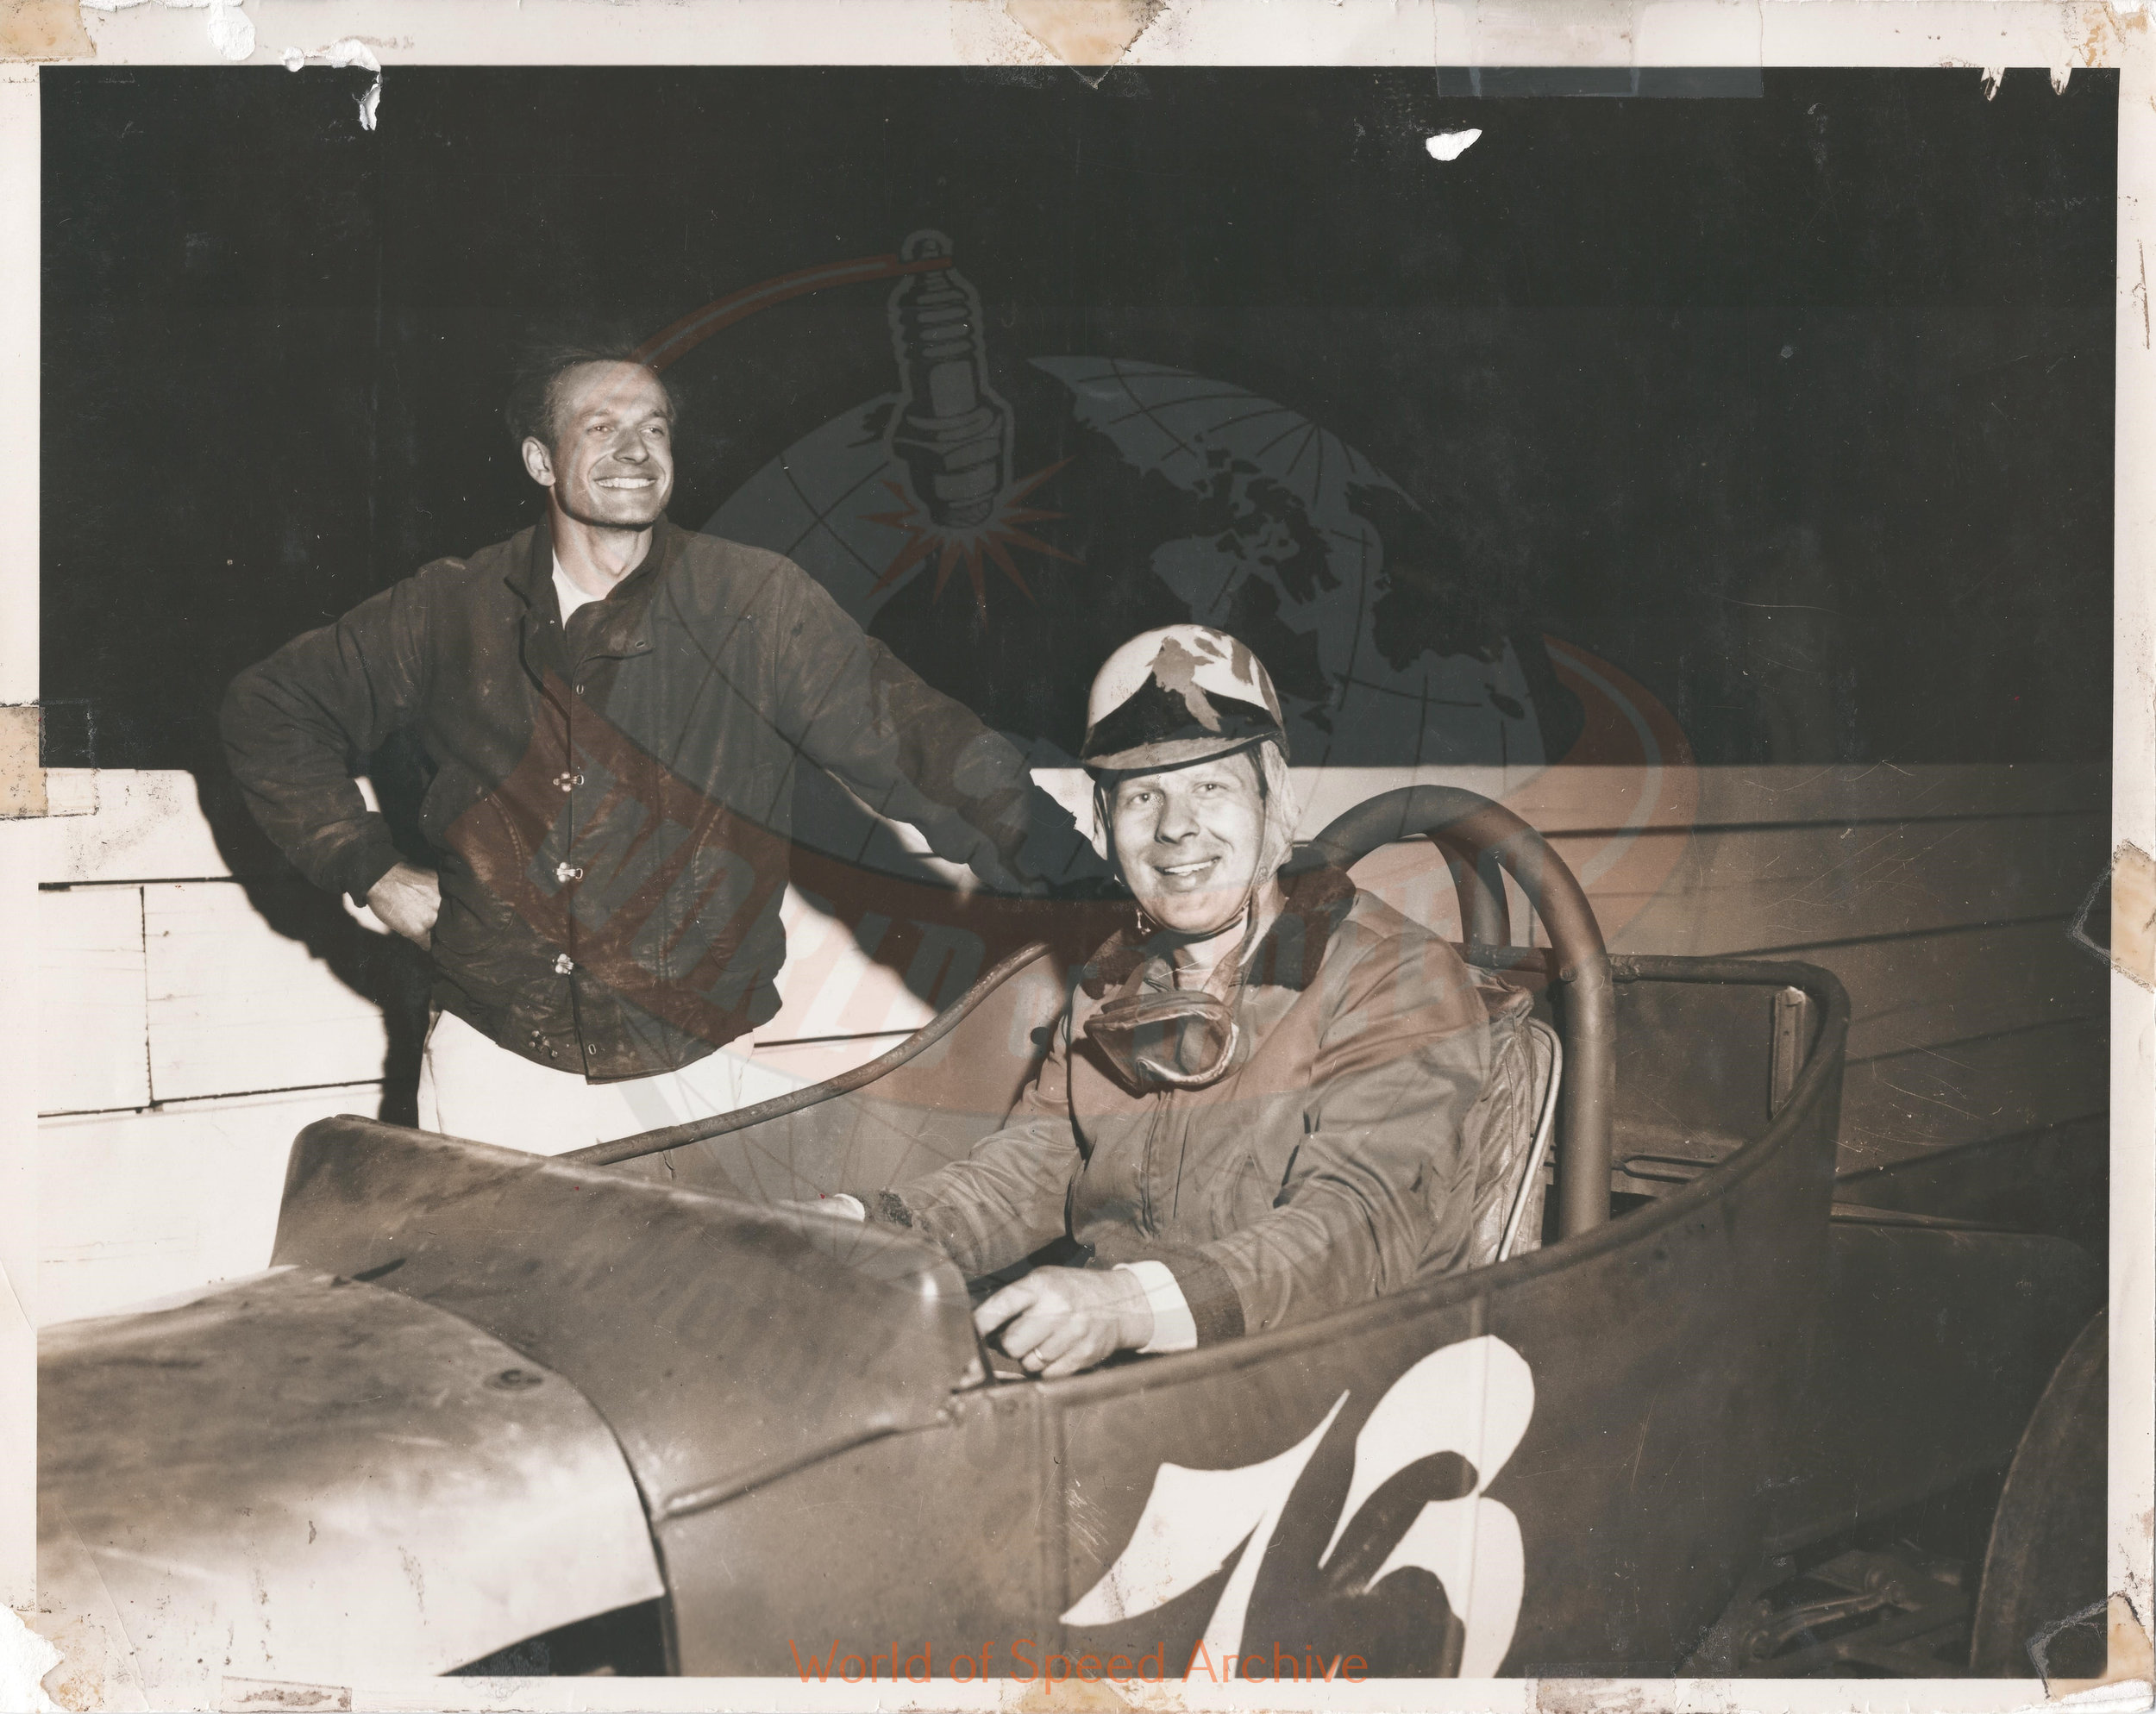 JG.09.A - Max Hunn (driver) and Don Waters (car owner), Salem Hollywood Bowl 1950